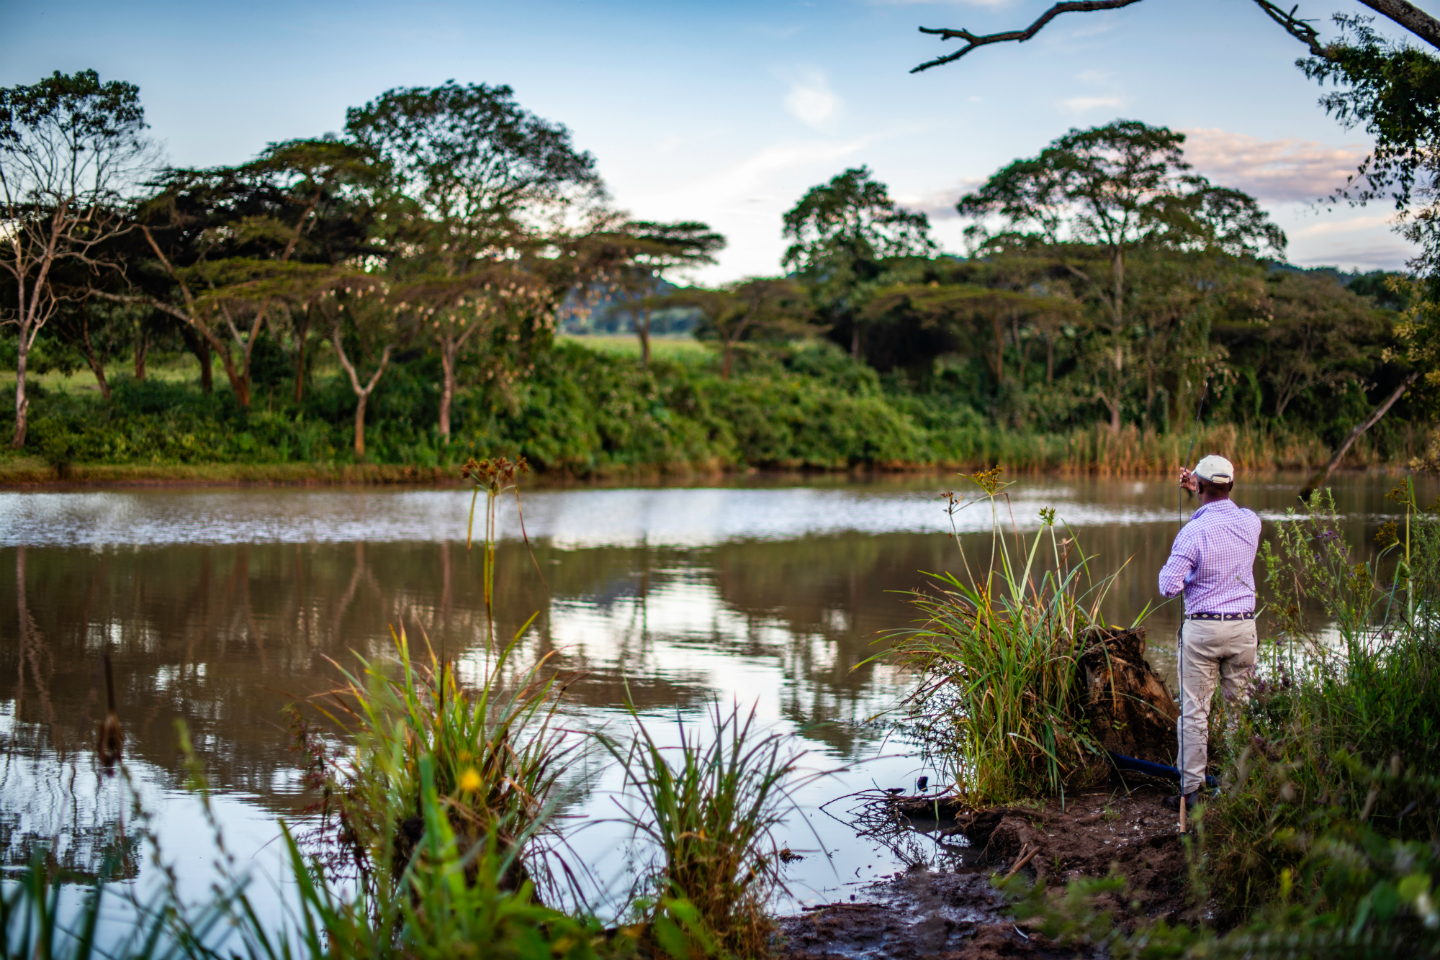 an angler holding a fly fishing rod on a river bank in Kenya